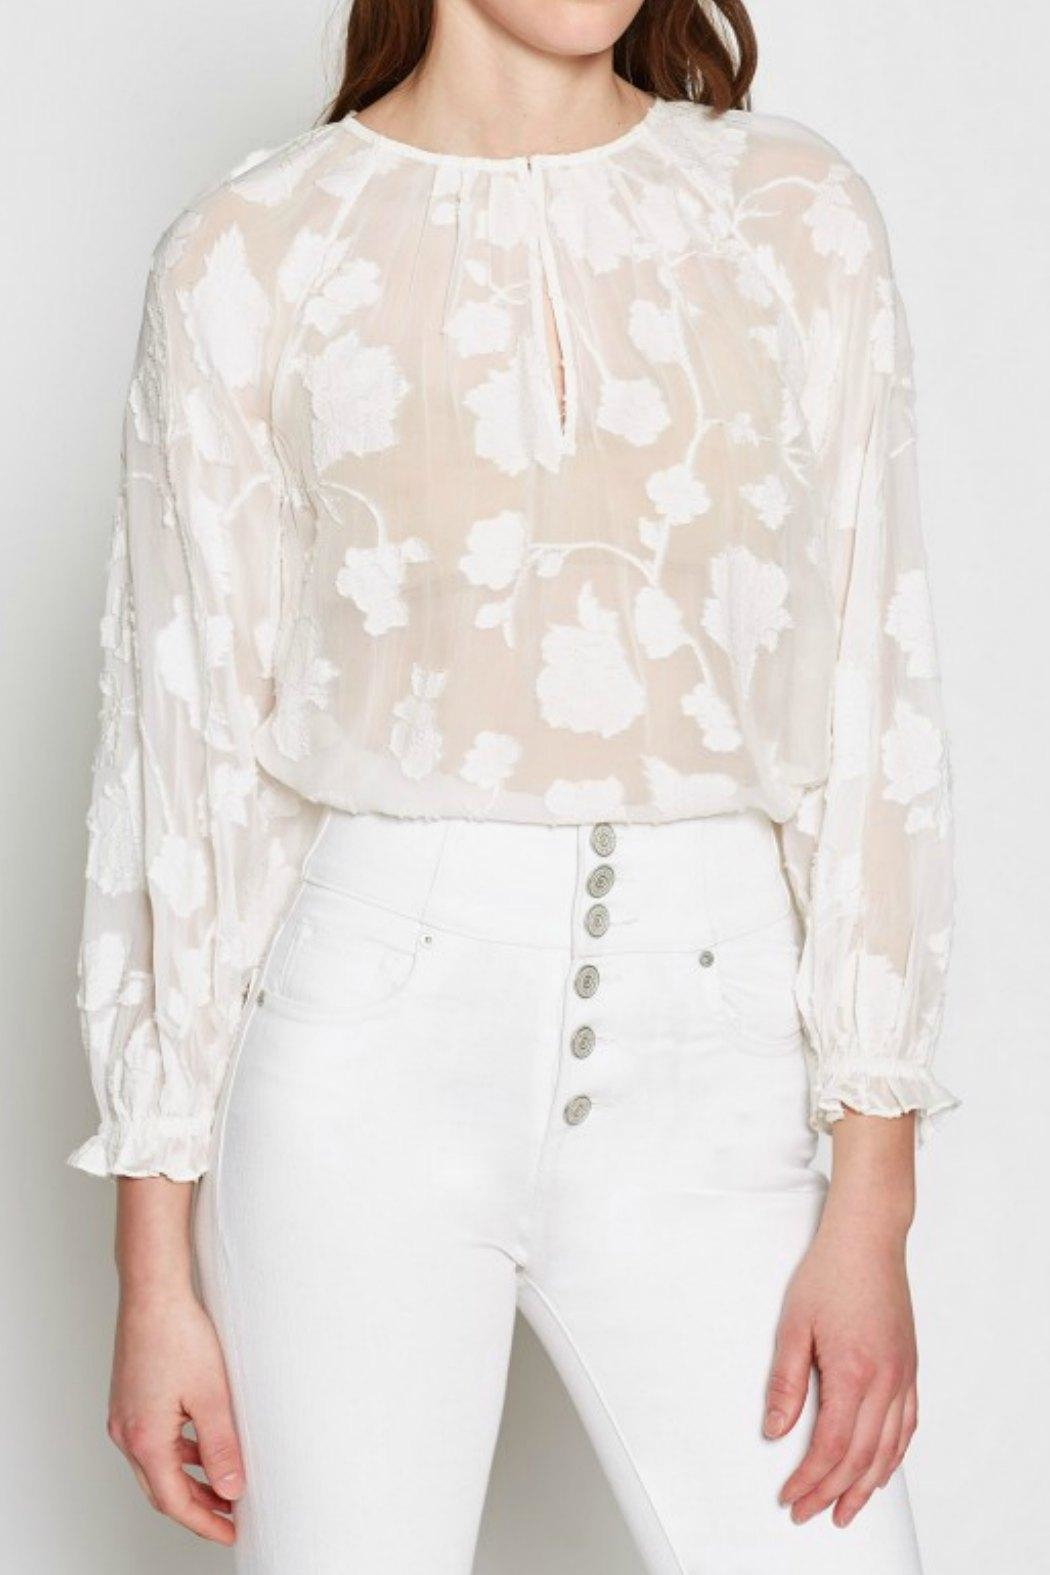 Joie Adison Long-Sleeve Blouse - Front Cropped Image